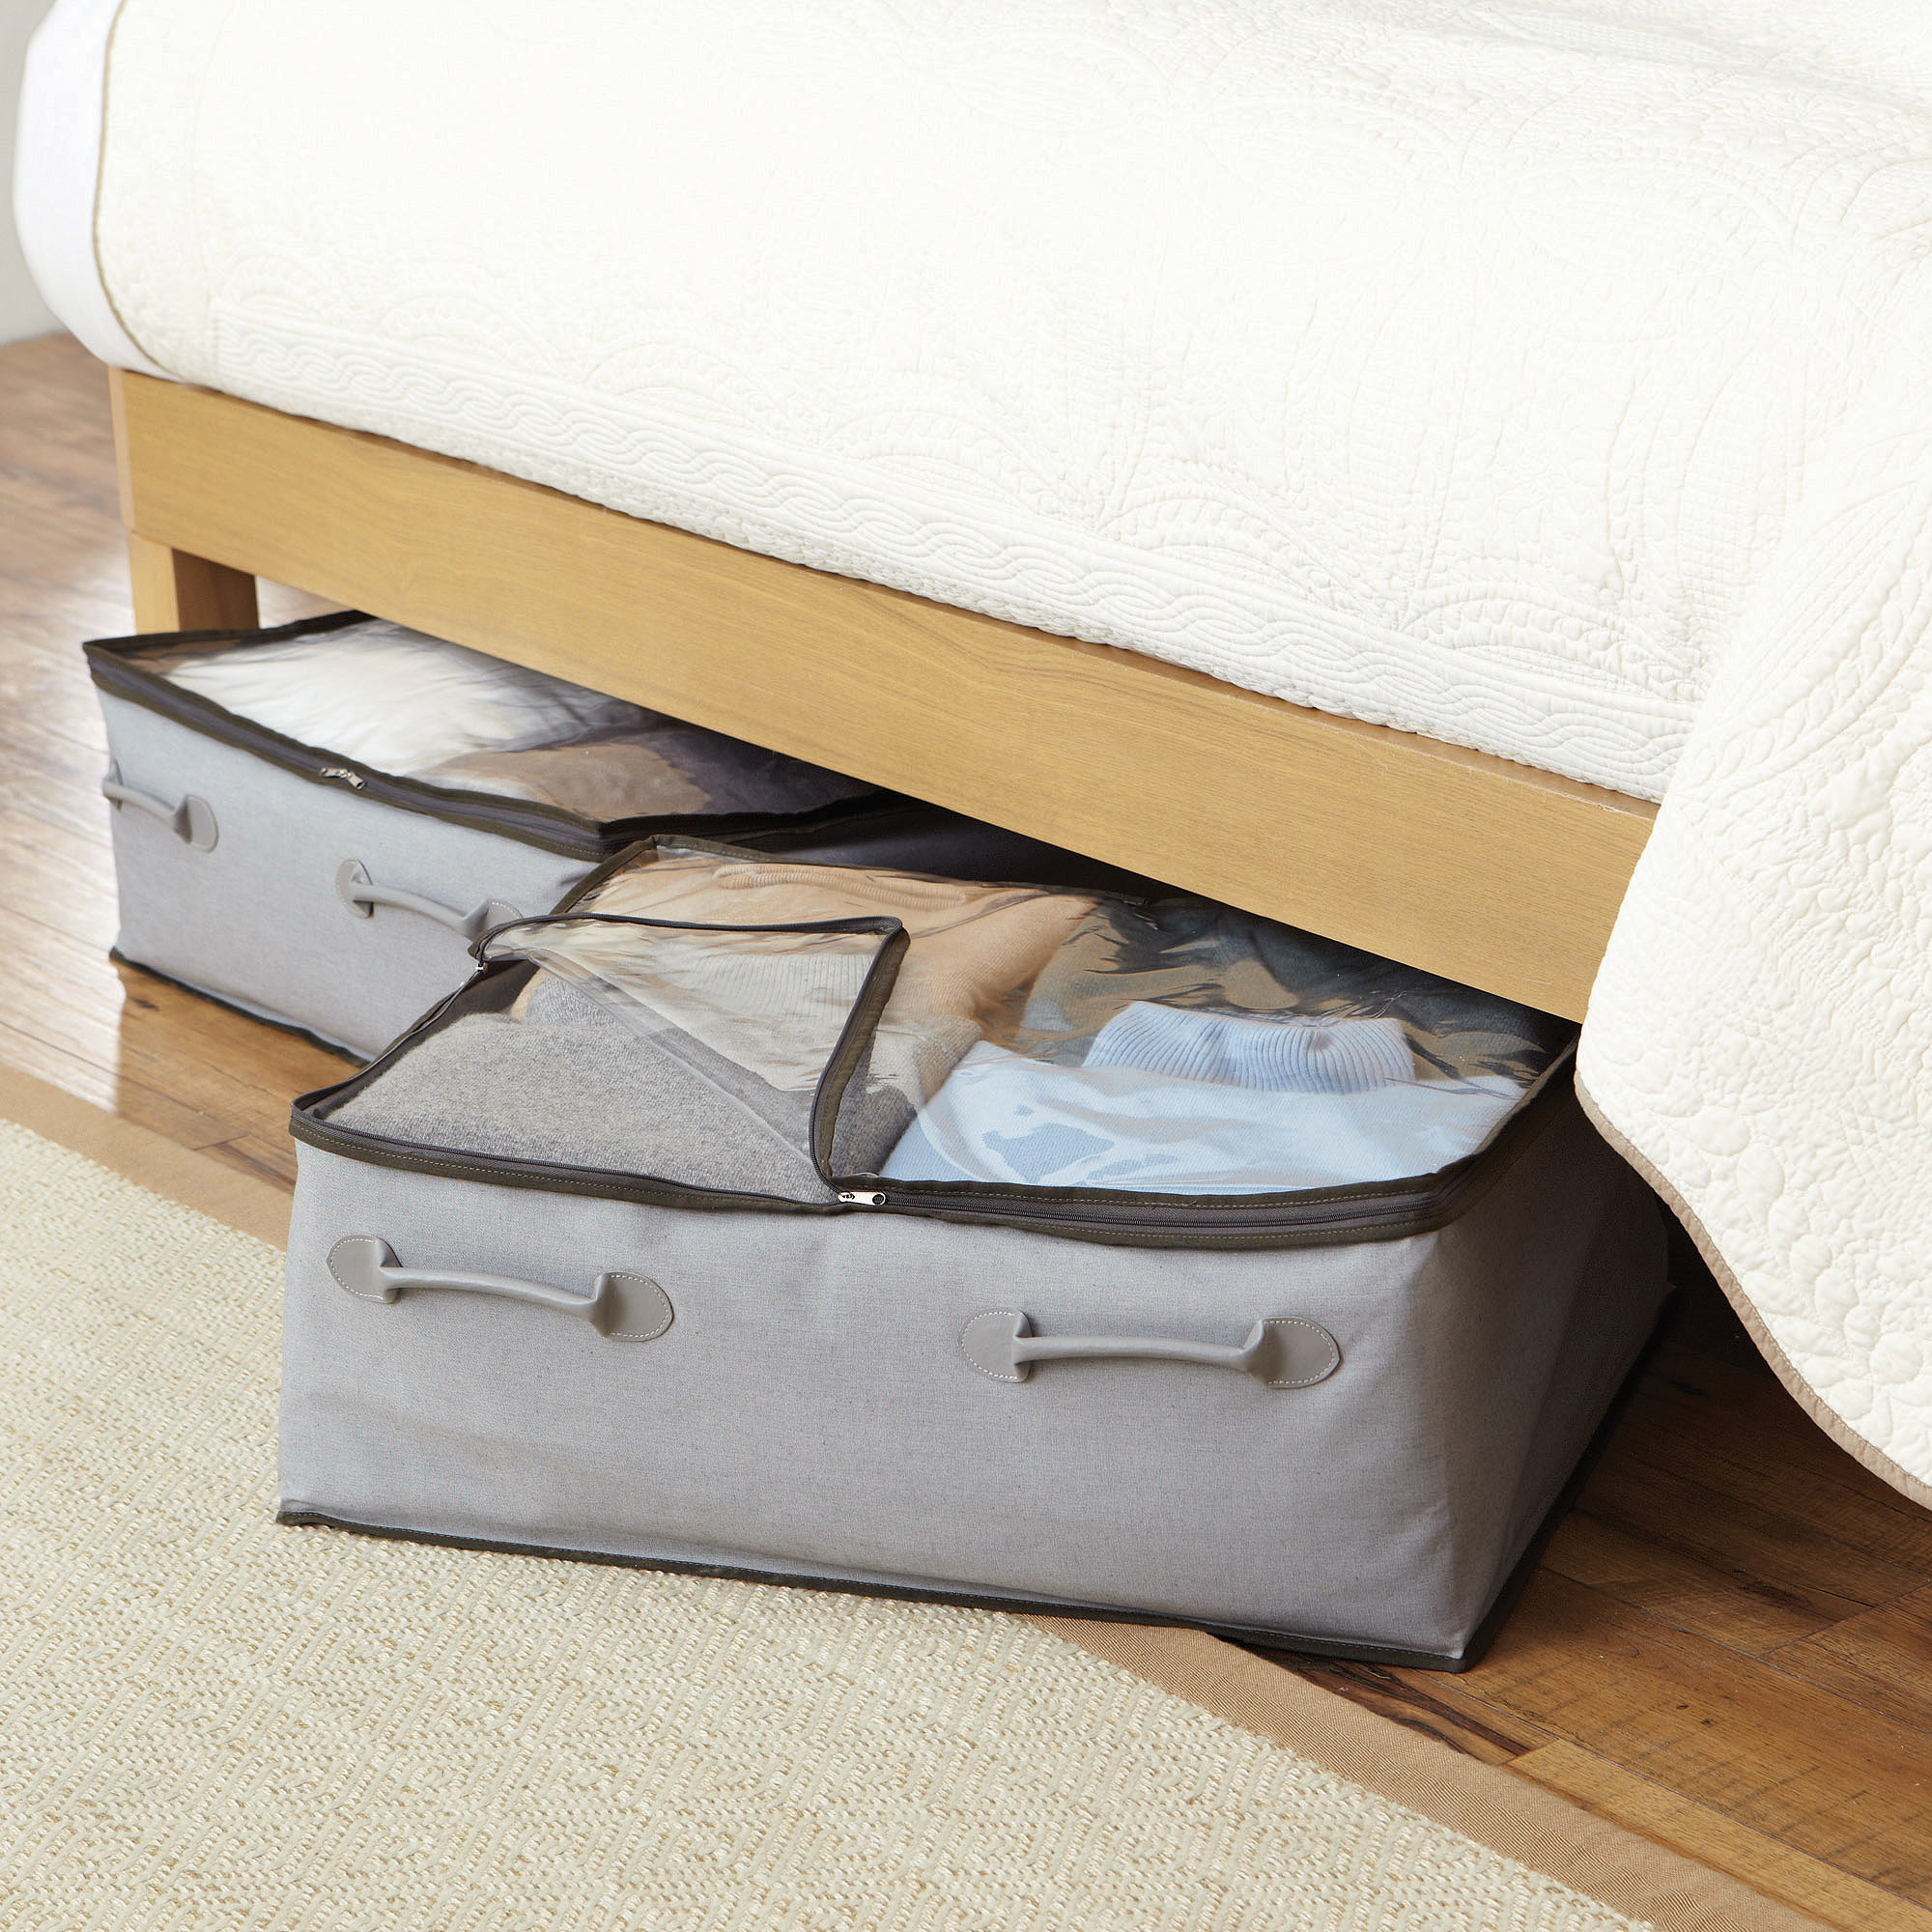 Better Homes and Gardens 2-Pocket Under-Bed Bag, Grey